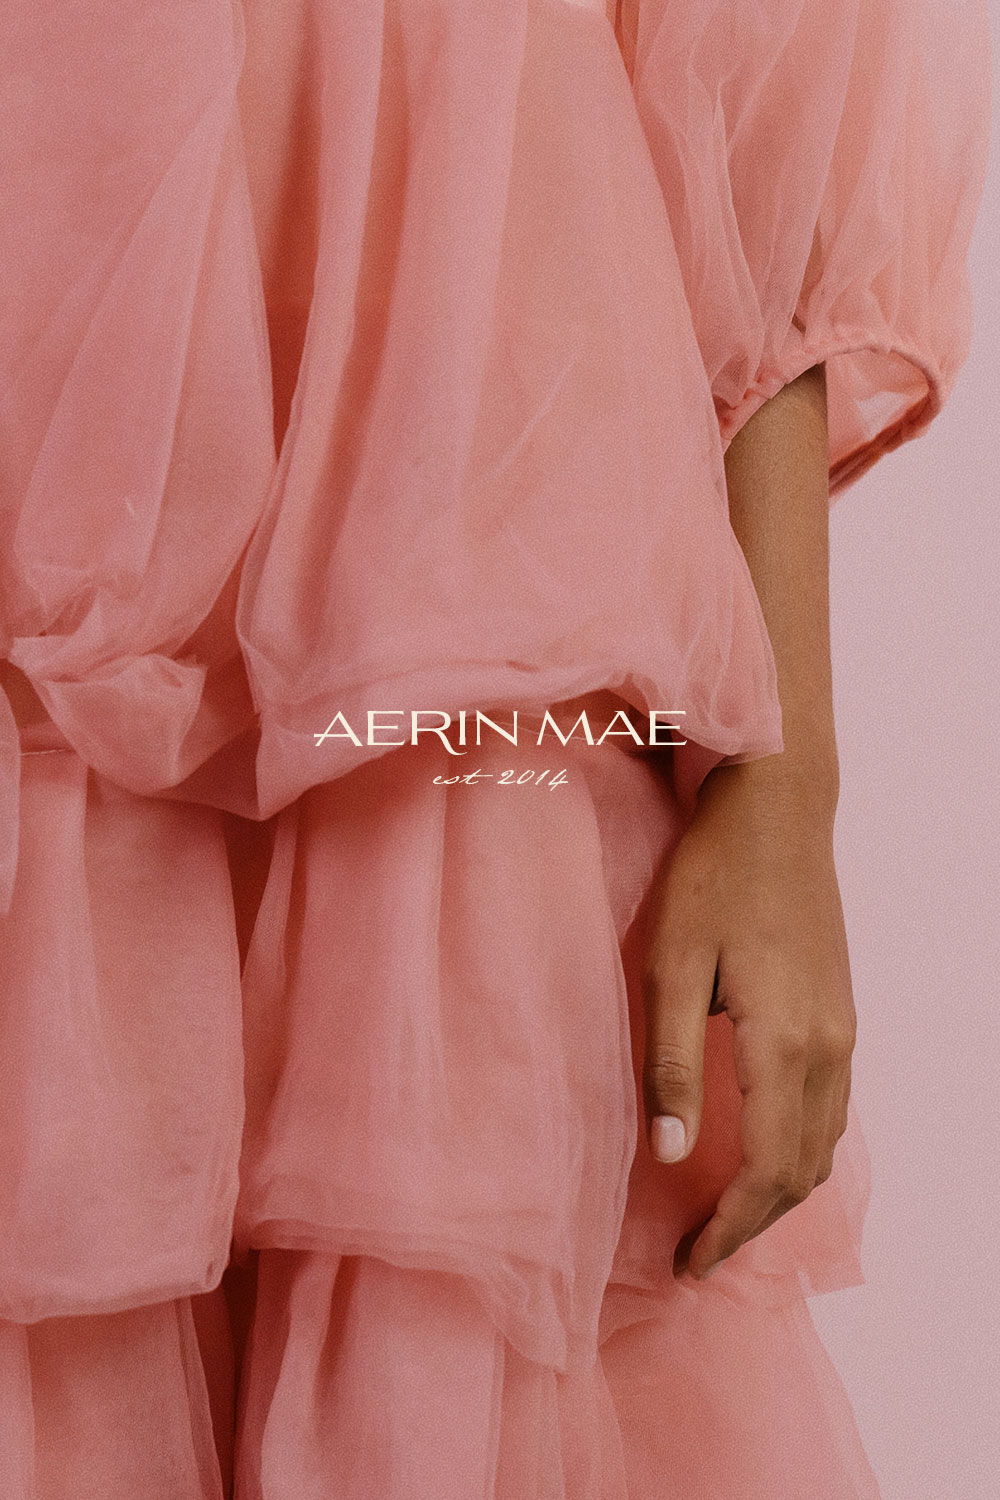 Aerin Mae Brand Imagery by Everything Here Now